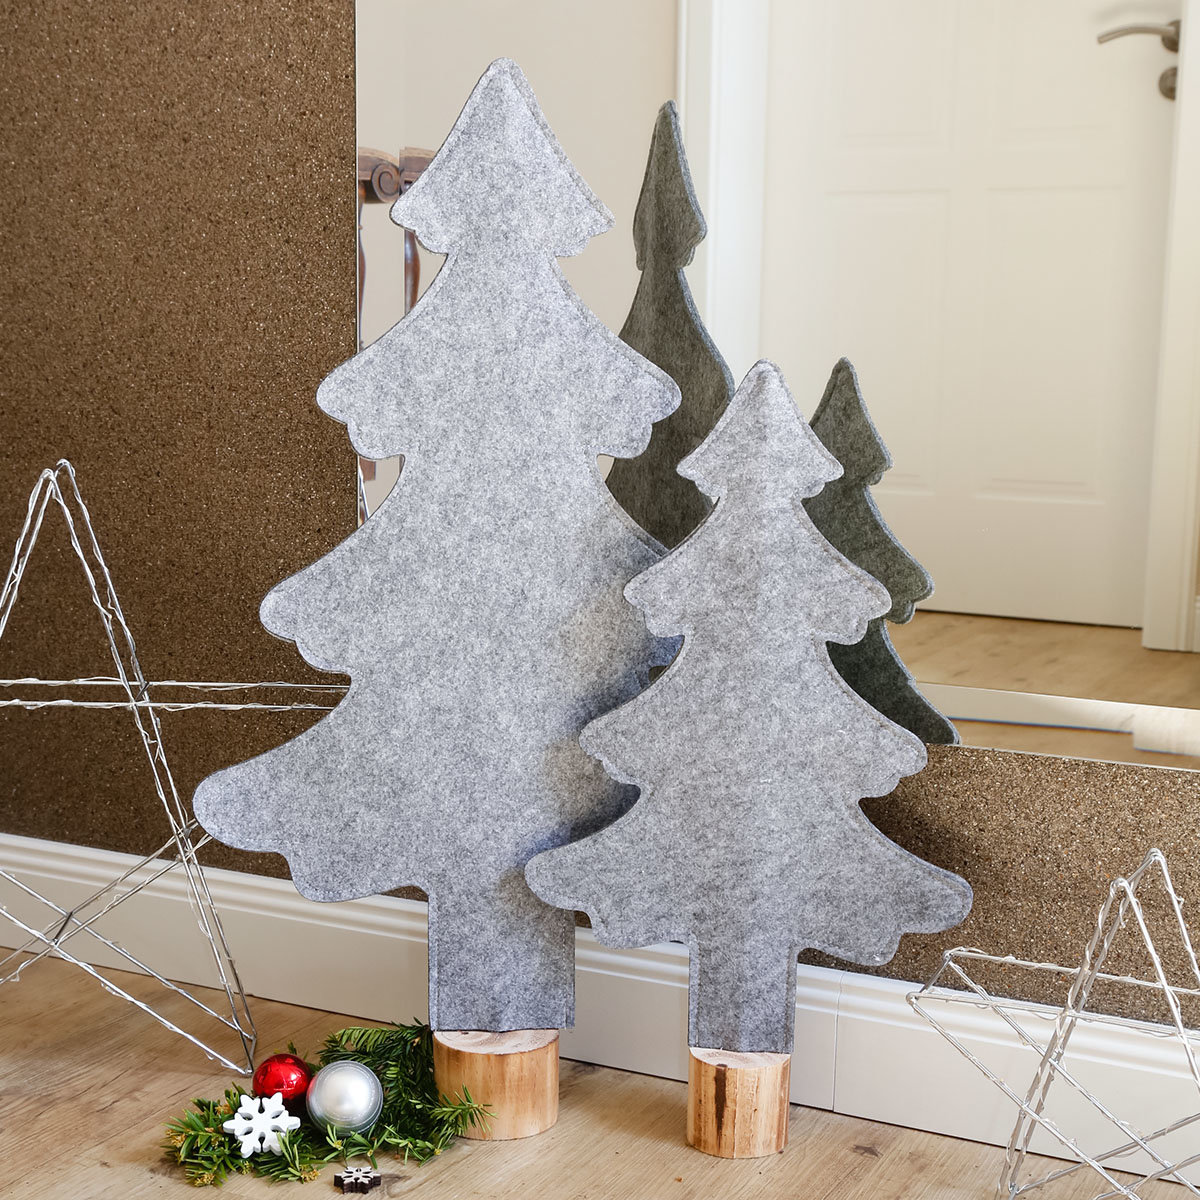 filz weihnachtsbaum winter time gro online kaufen bei g rtner p tschke. Black Bedroom Furniture Sets. Home Design Ideas